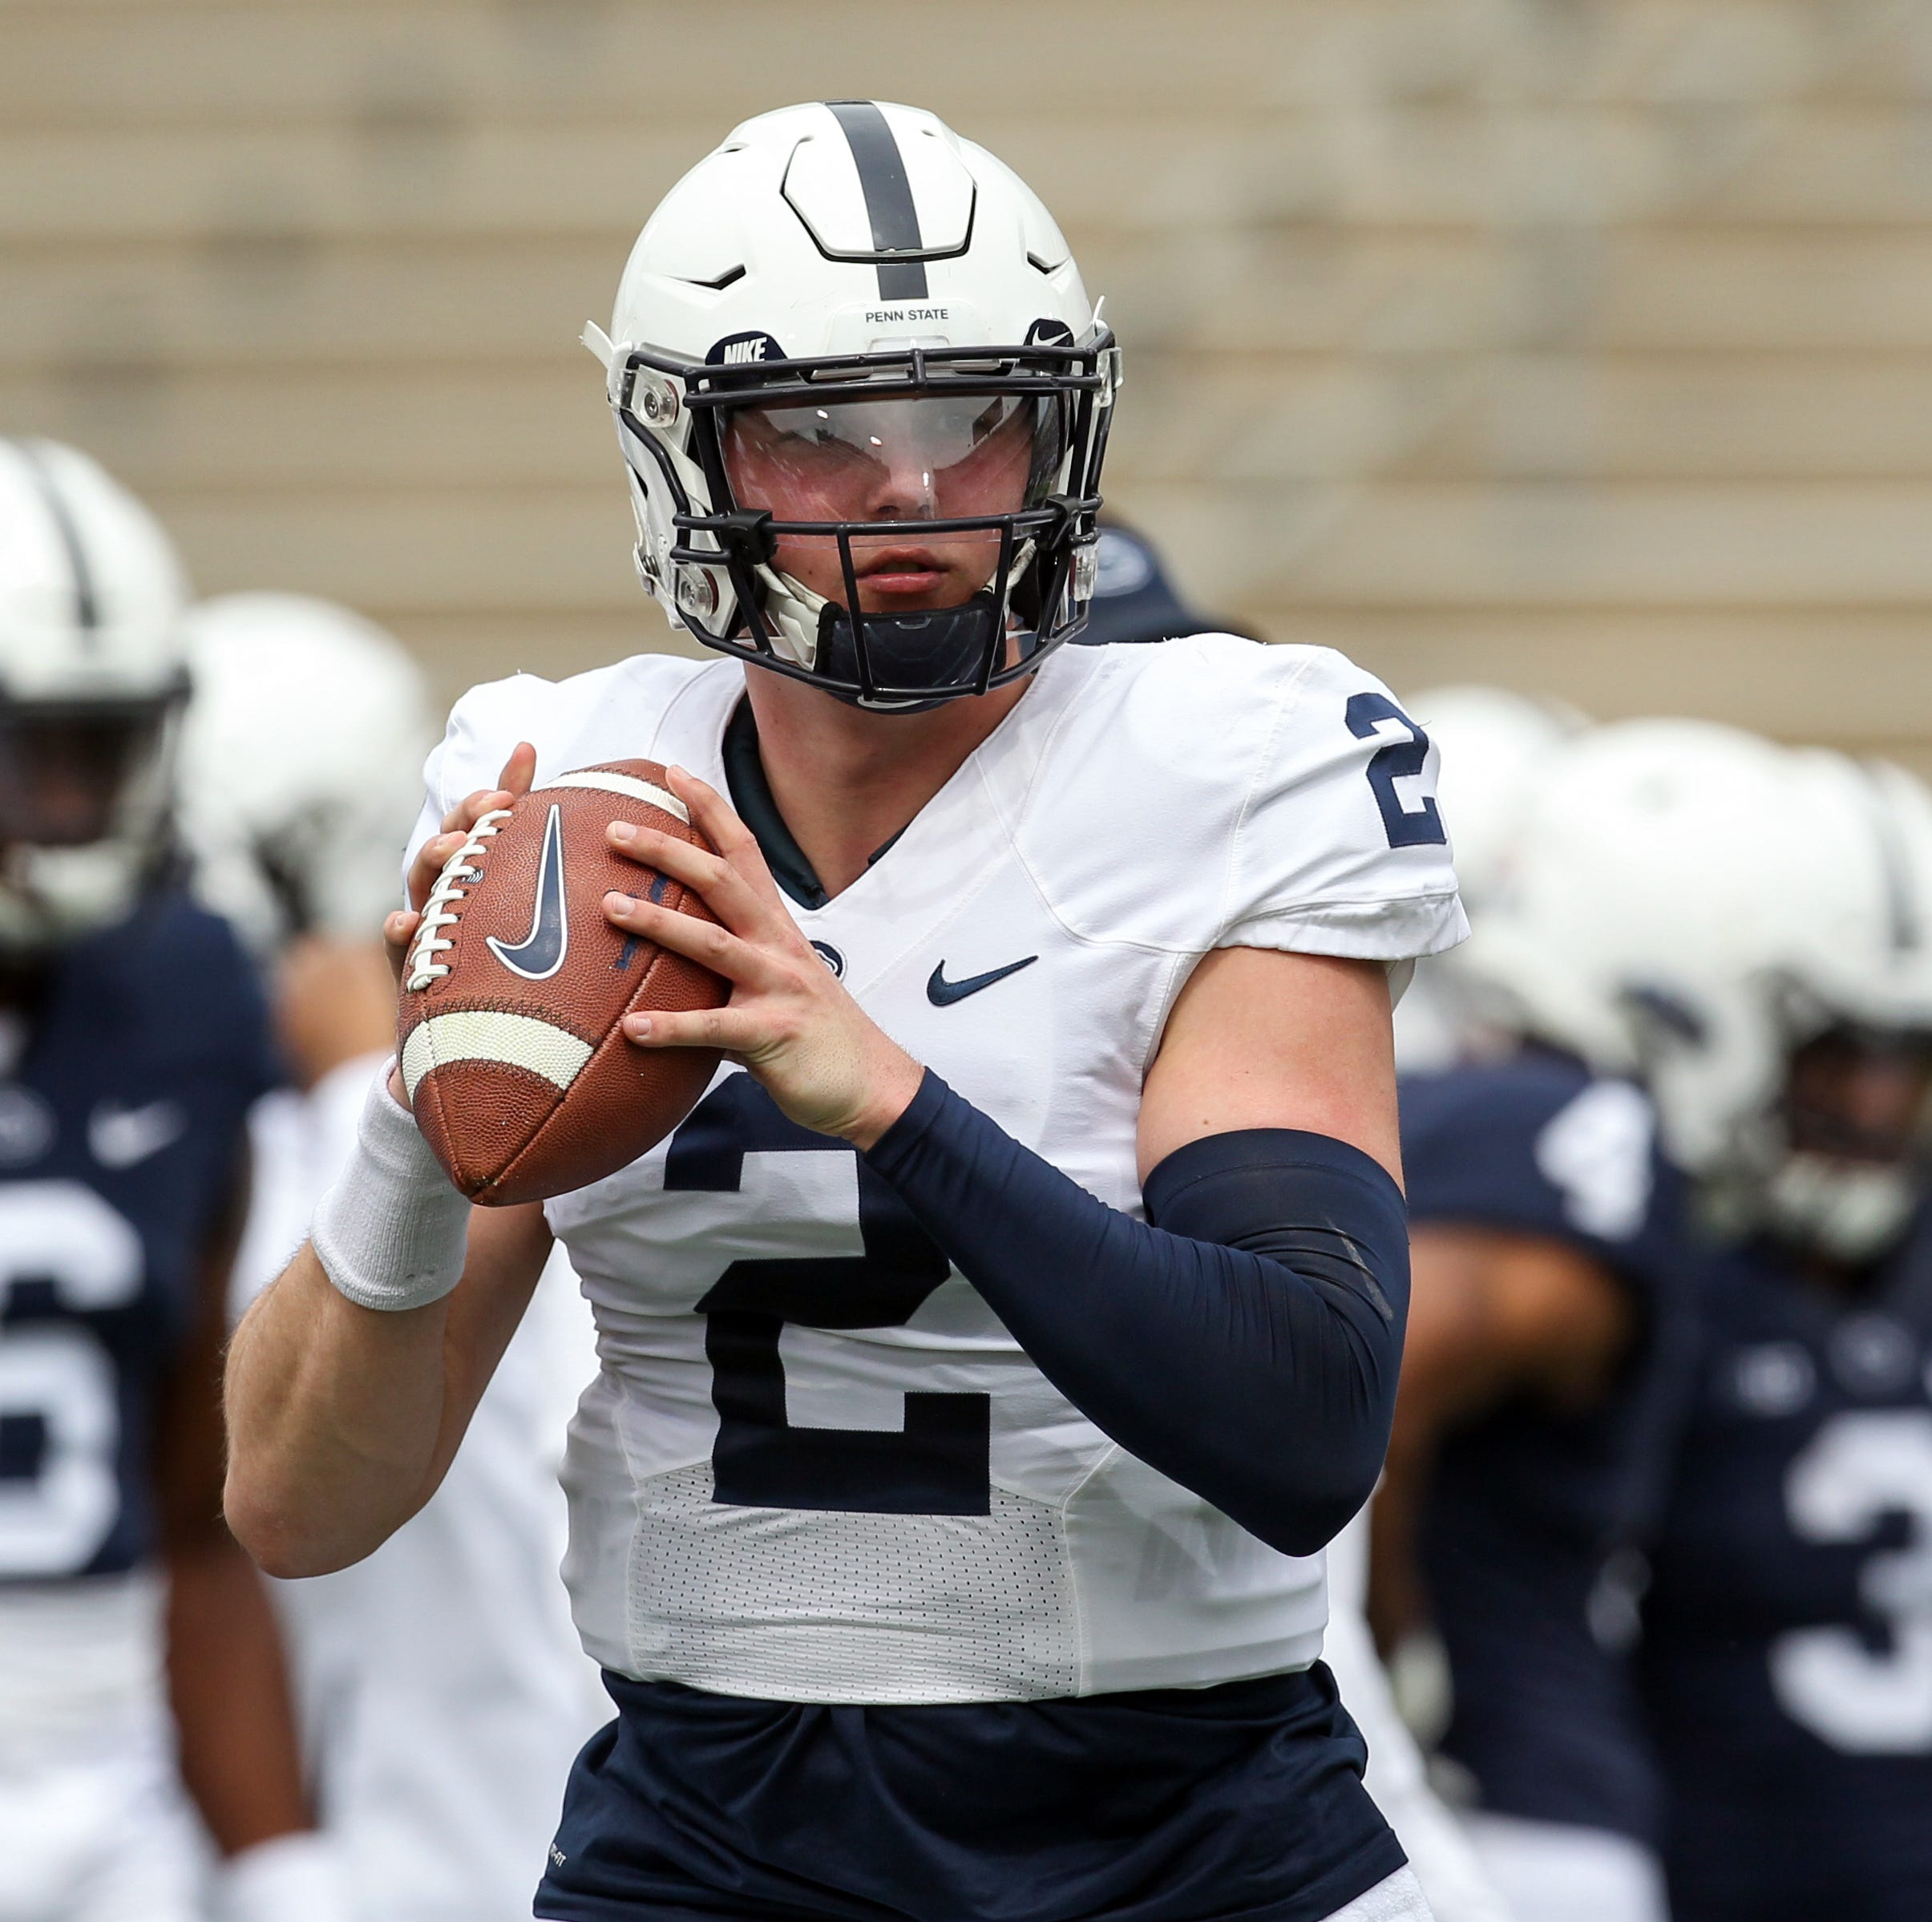 Penn State football: If Tommy Stevens can't buy into Lions now, he should go.